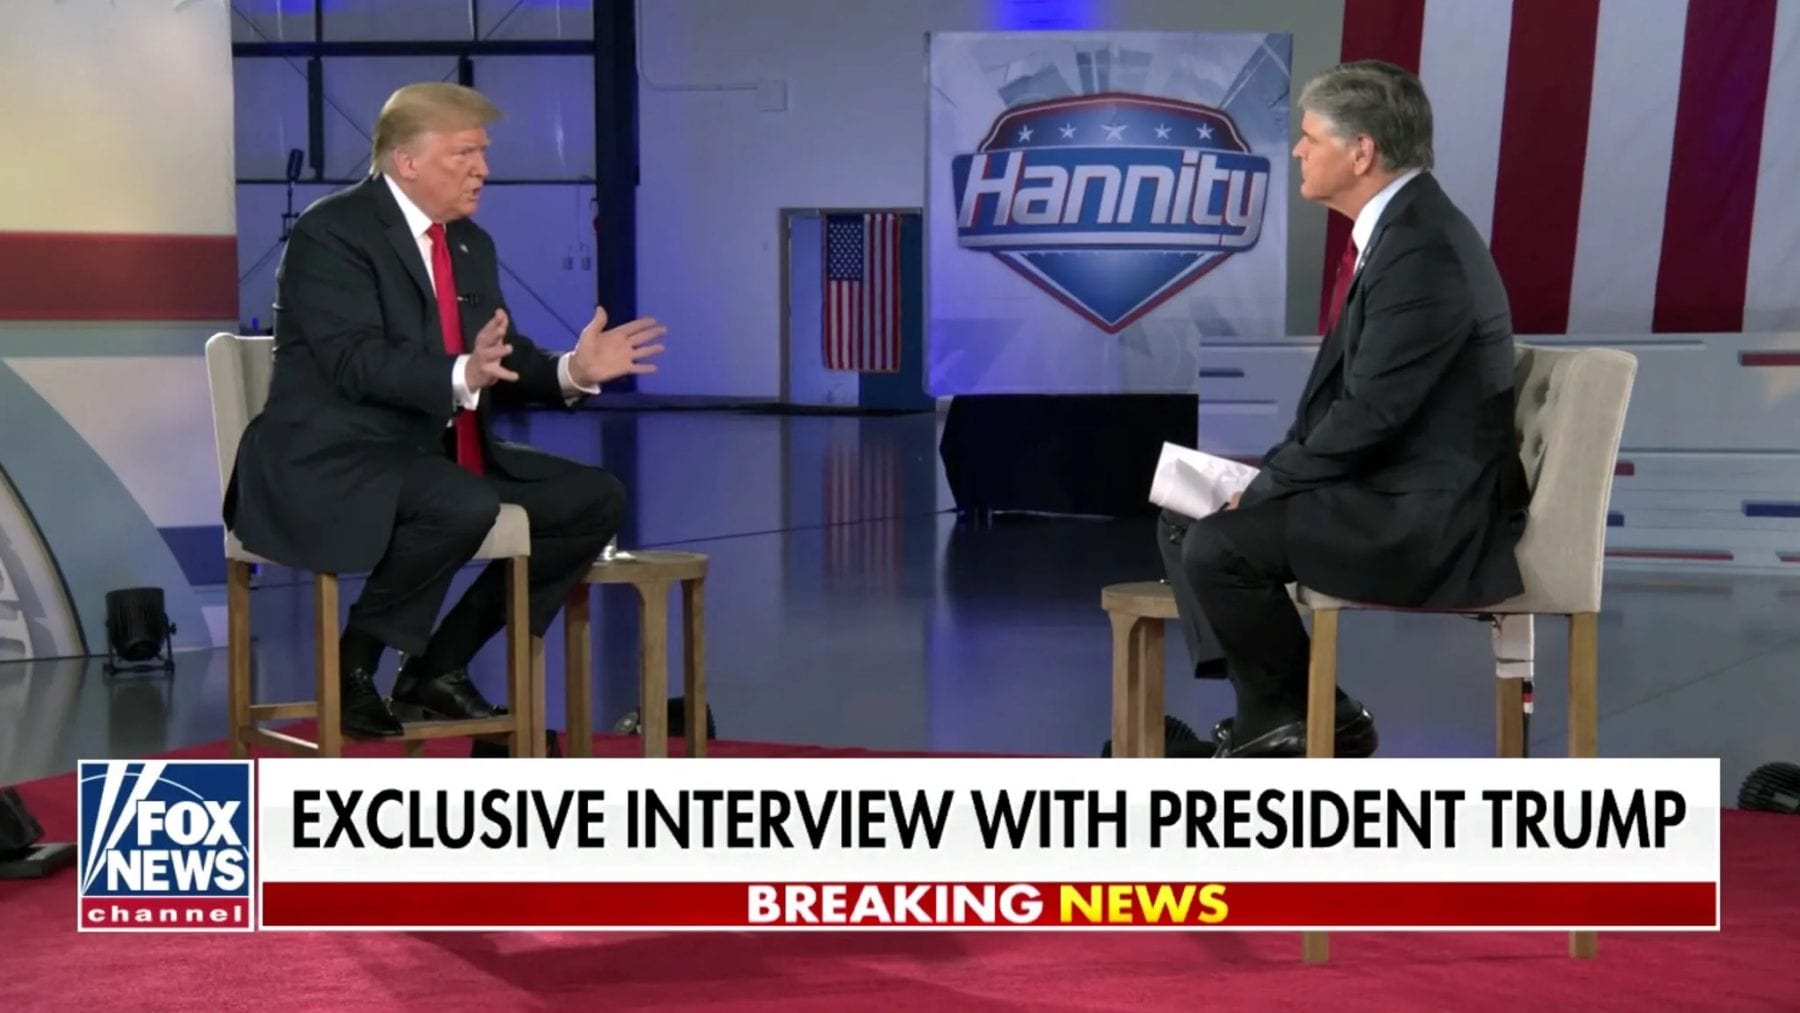 Trump is set to give his first on-camera sit-down interview since leaving office Monday.